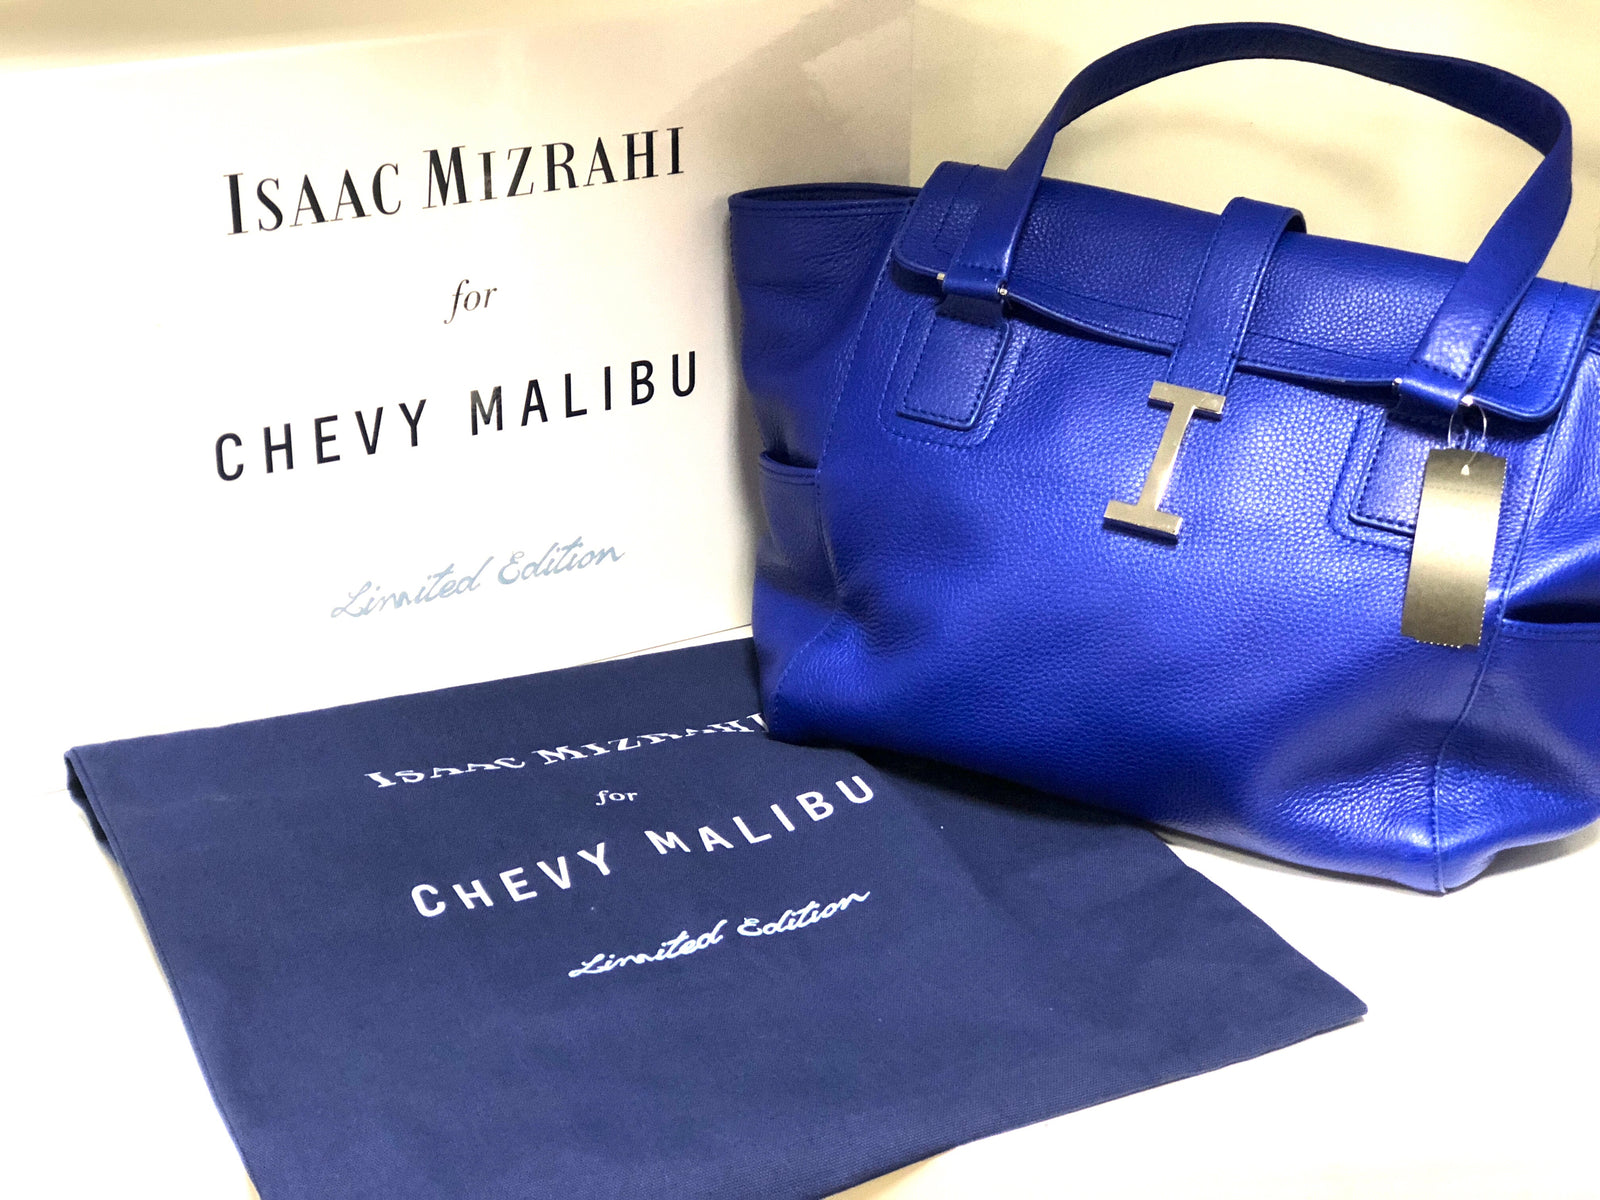 Isaac Mizrahi Limited Edition